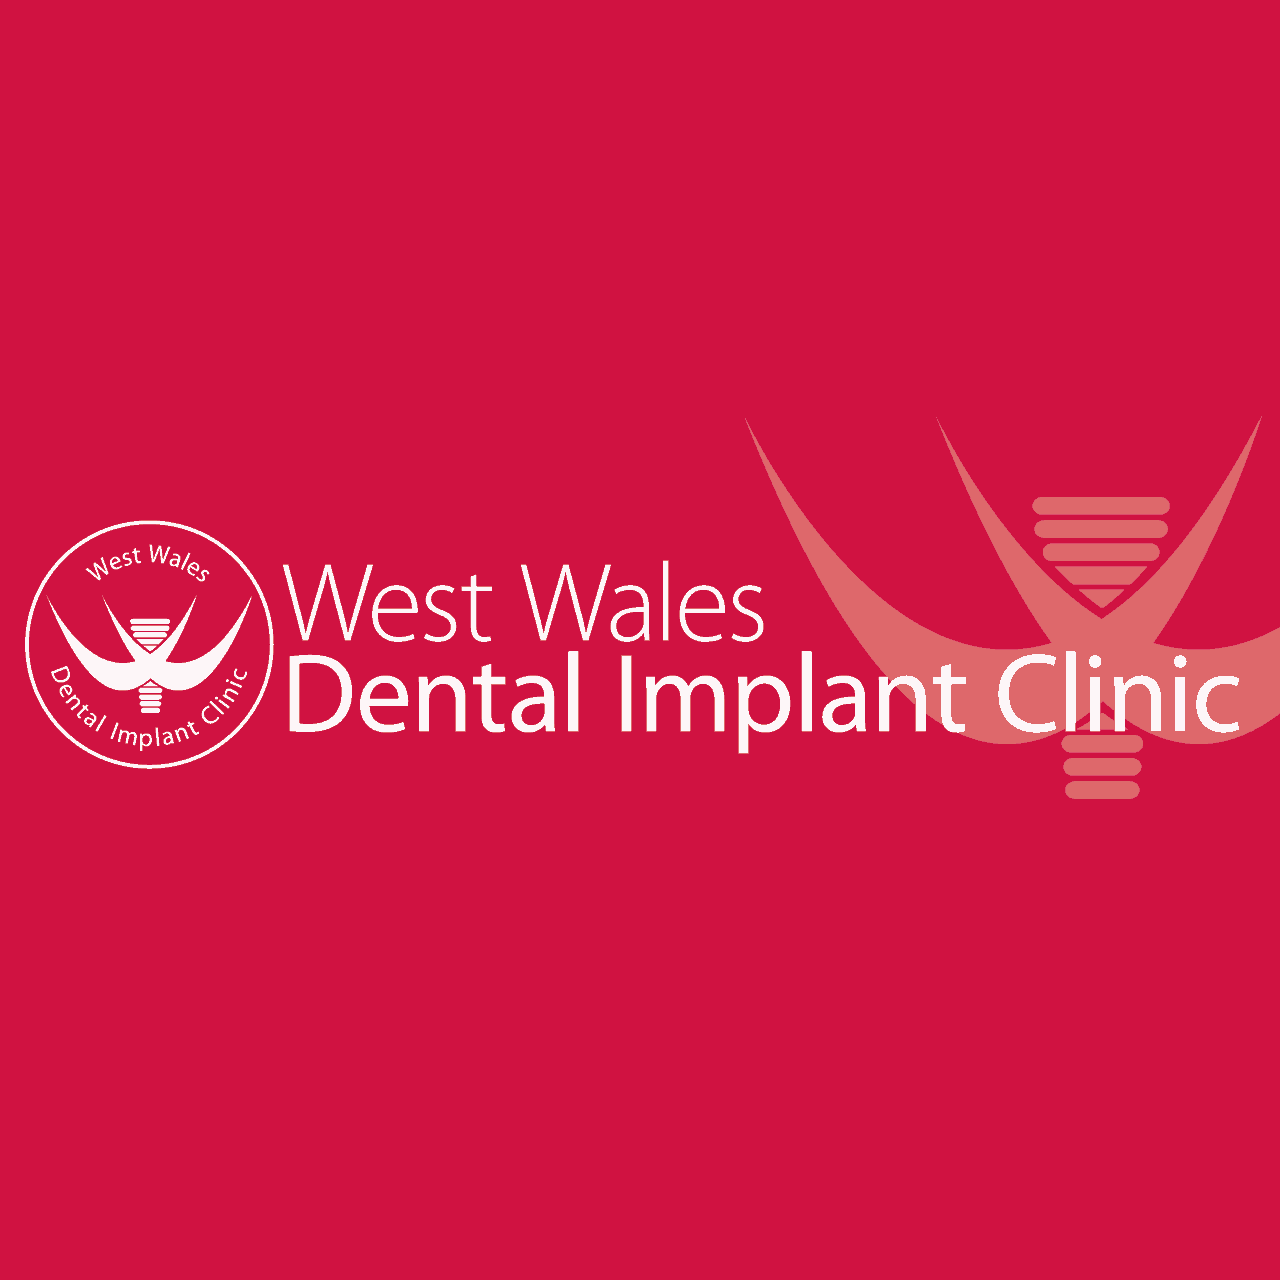 West Wales Dental Implant Clinic Corporate Branding Case Study